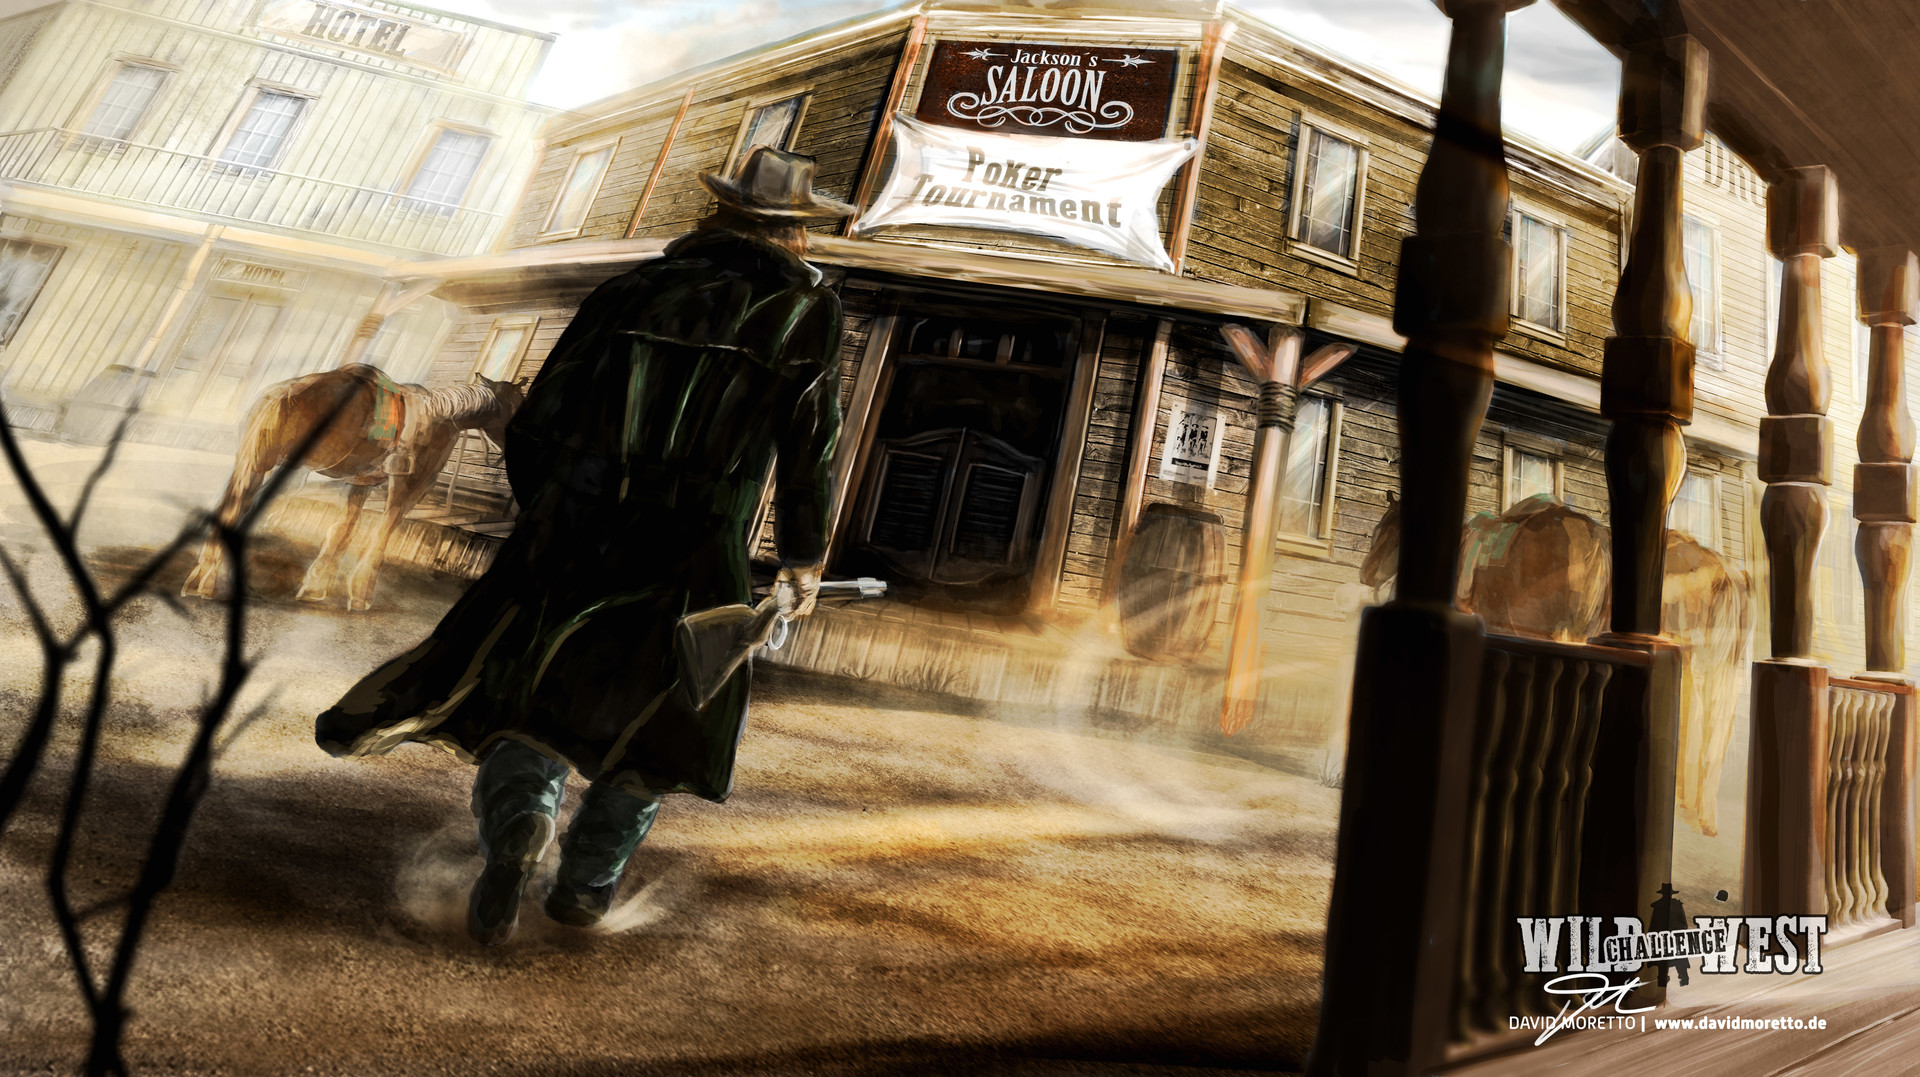 Final Wild West Keyframe Illustration THE LATE REVENGE! #2 / 4 Joe knew that the poker tournament was enviting for Jimmy. There he would encounter him. Today! Joe walked over to the saloon.